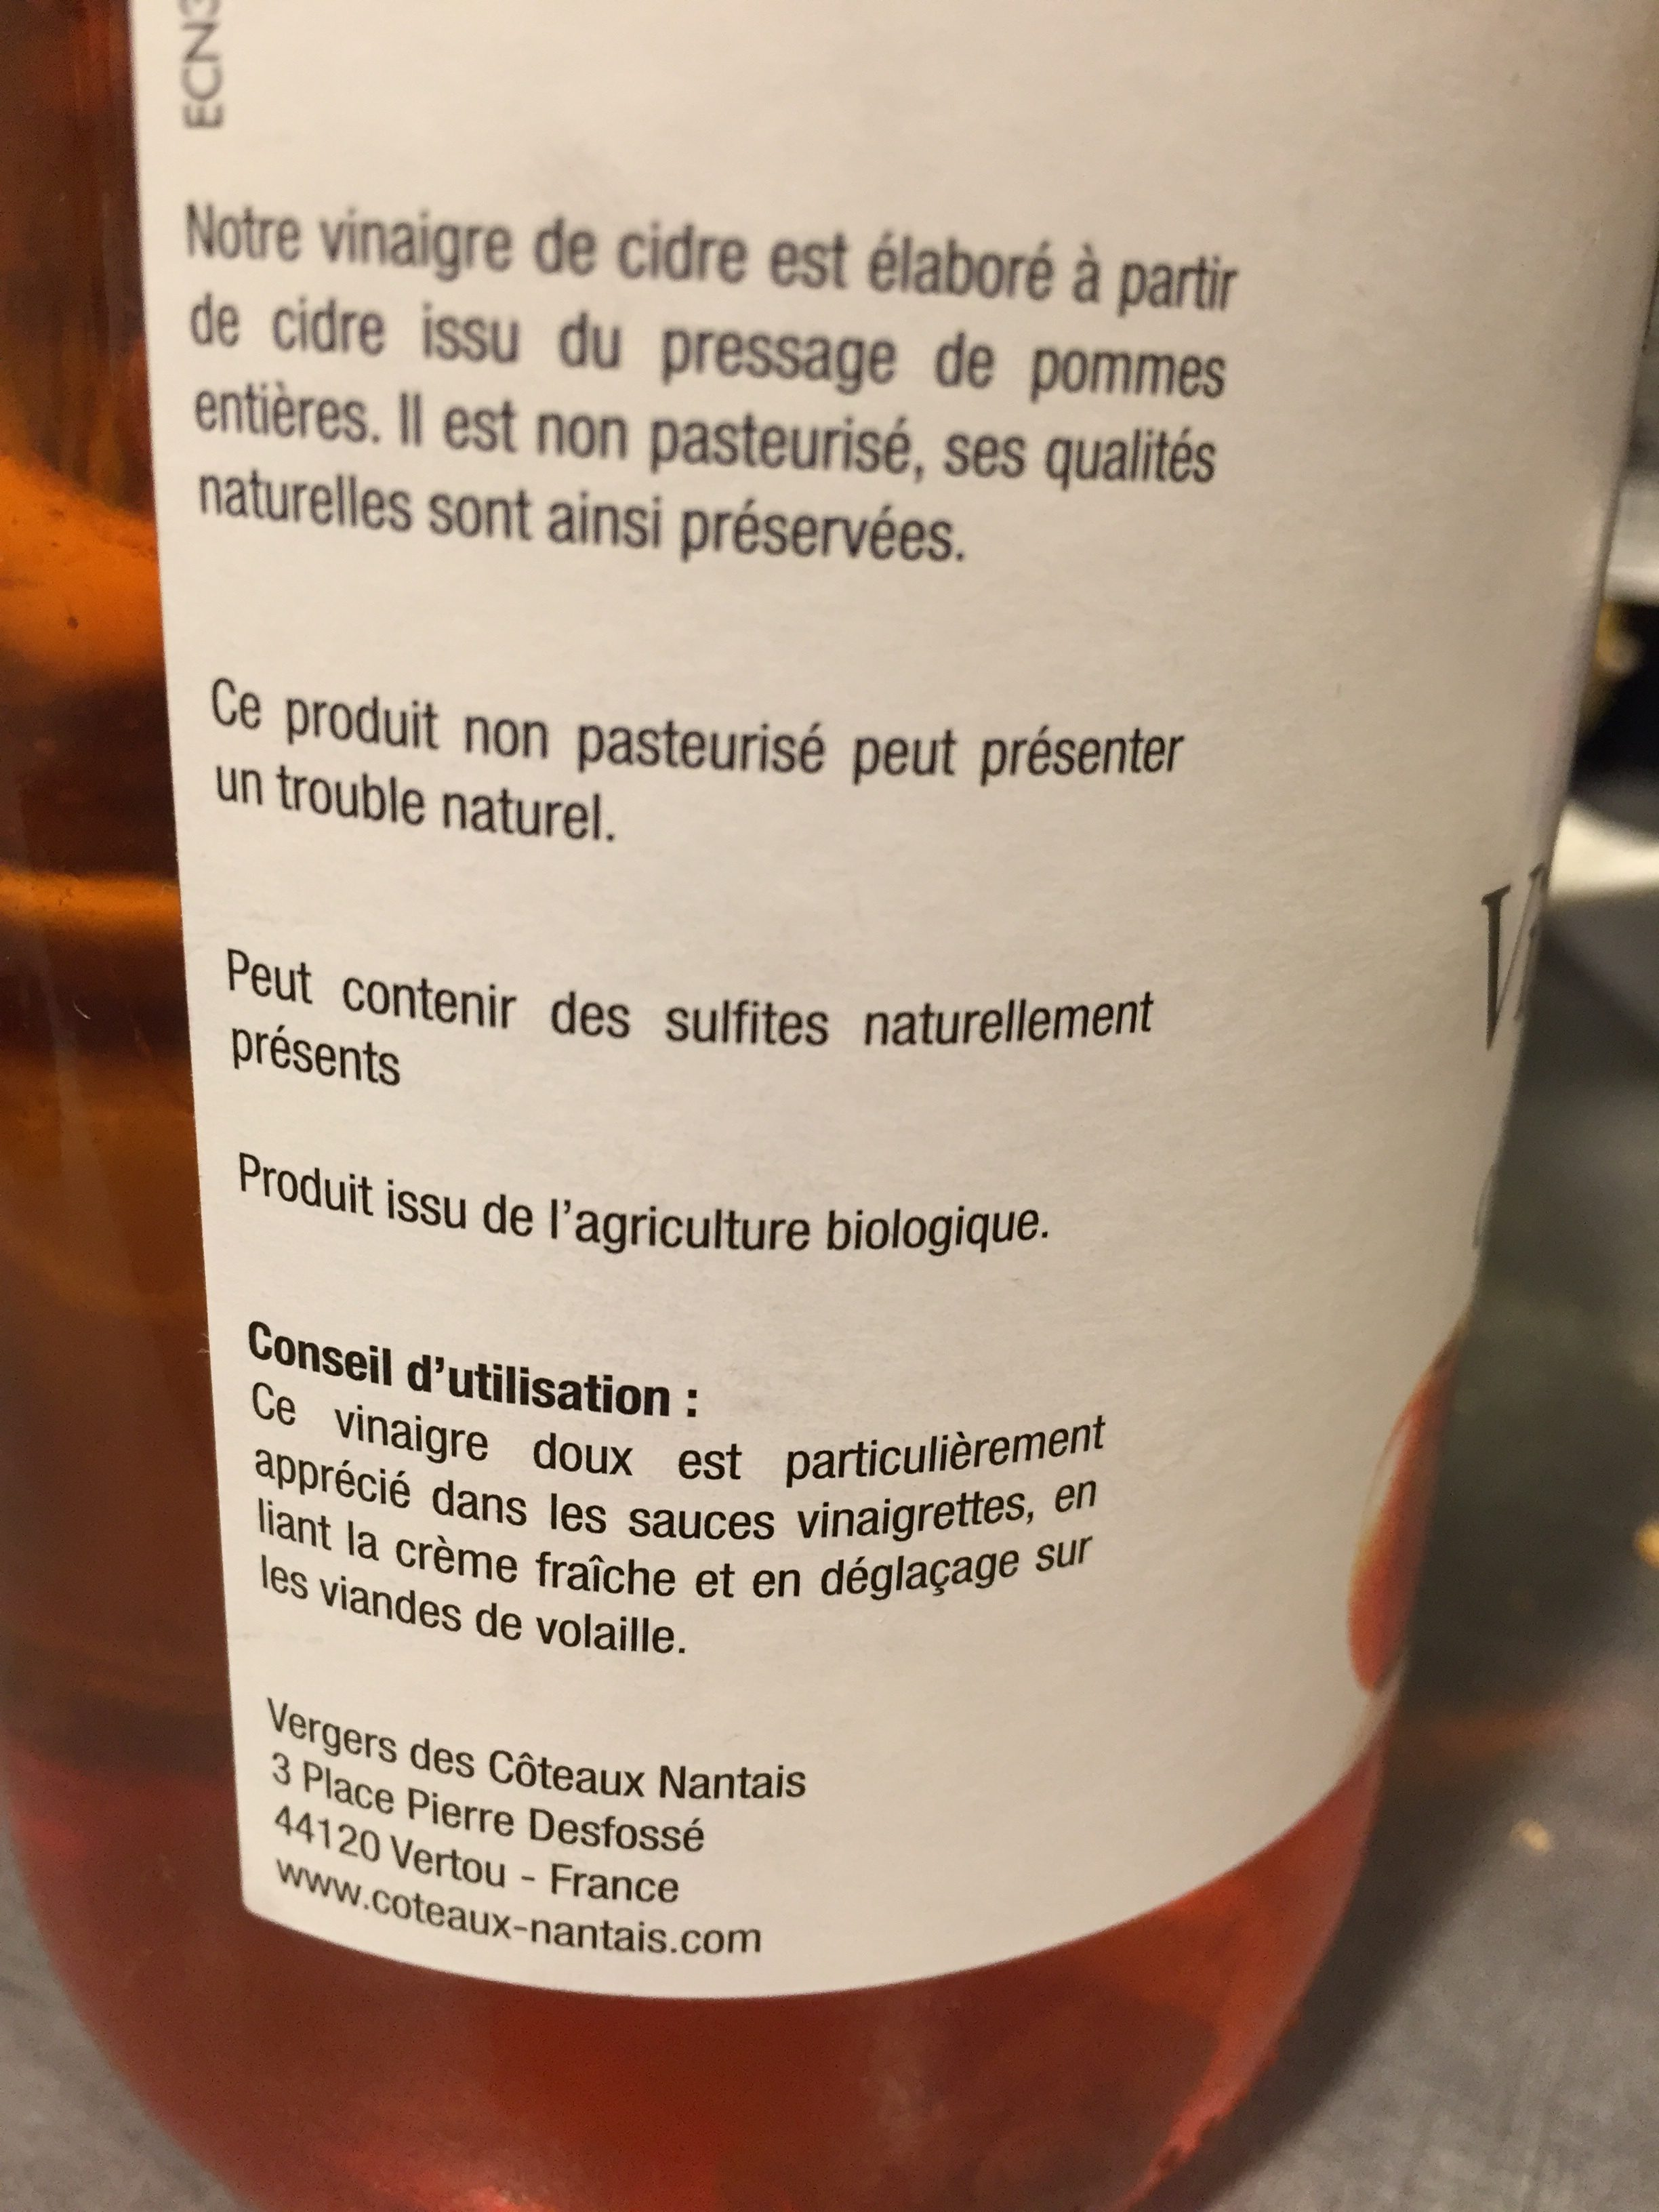 Vinaigre de cidre - Ingredients